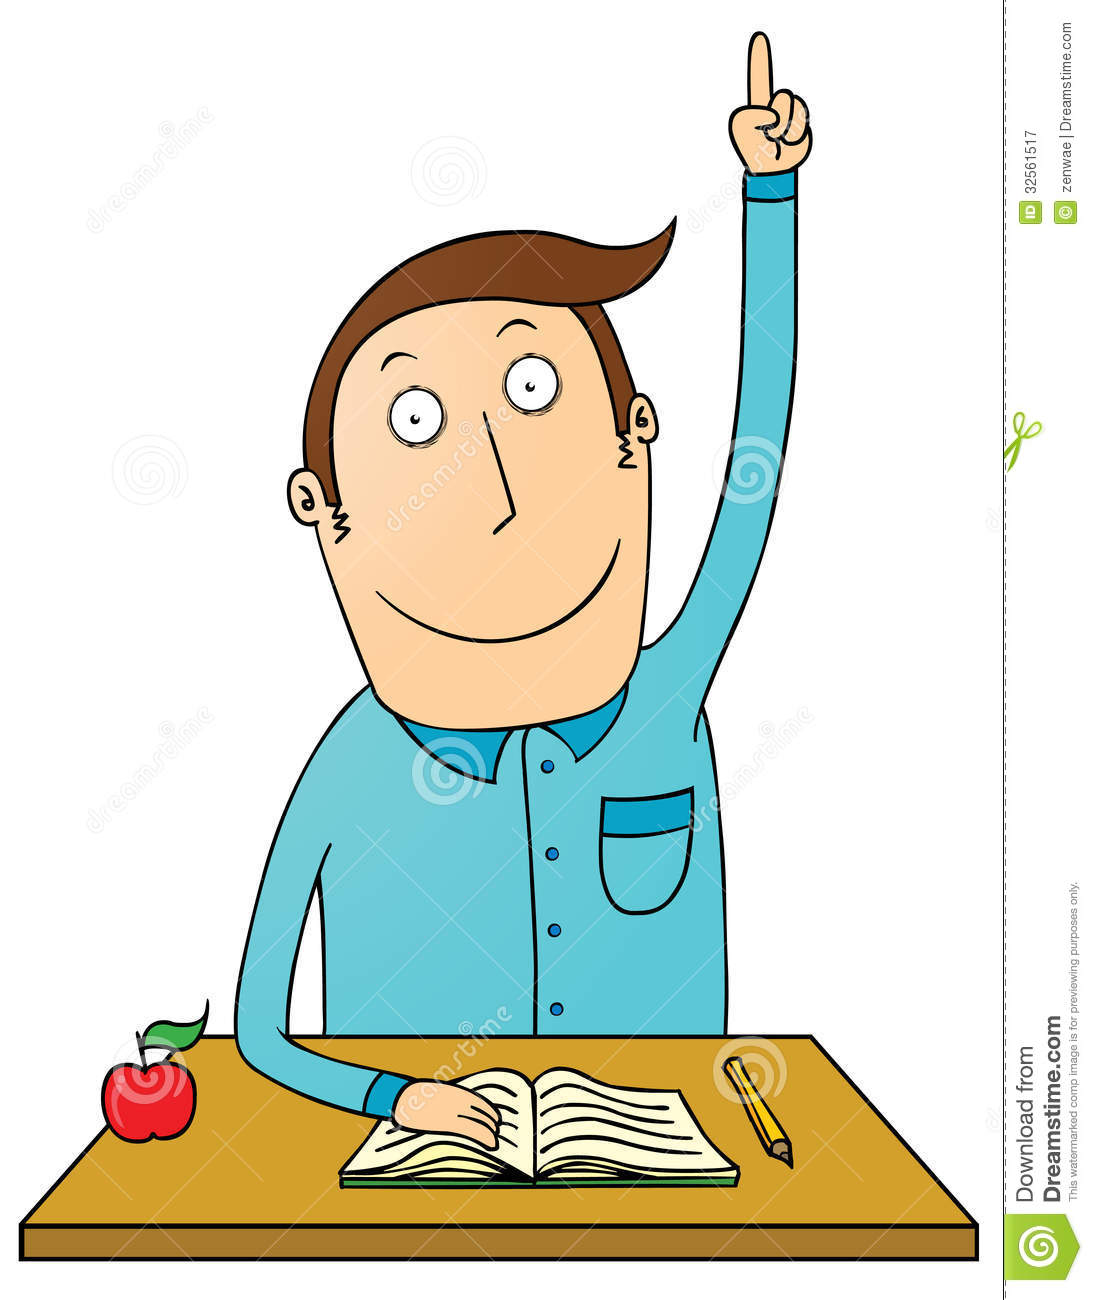 Raising Hand Student Royalty Free Stock Photography - Image: 32561517